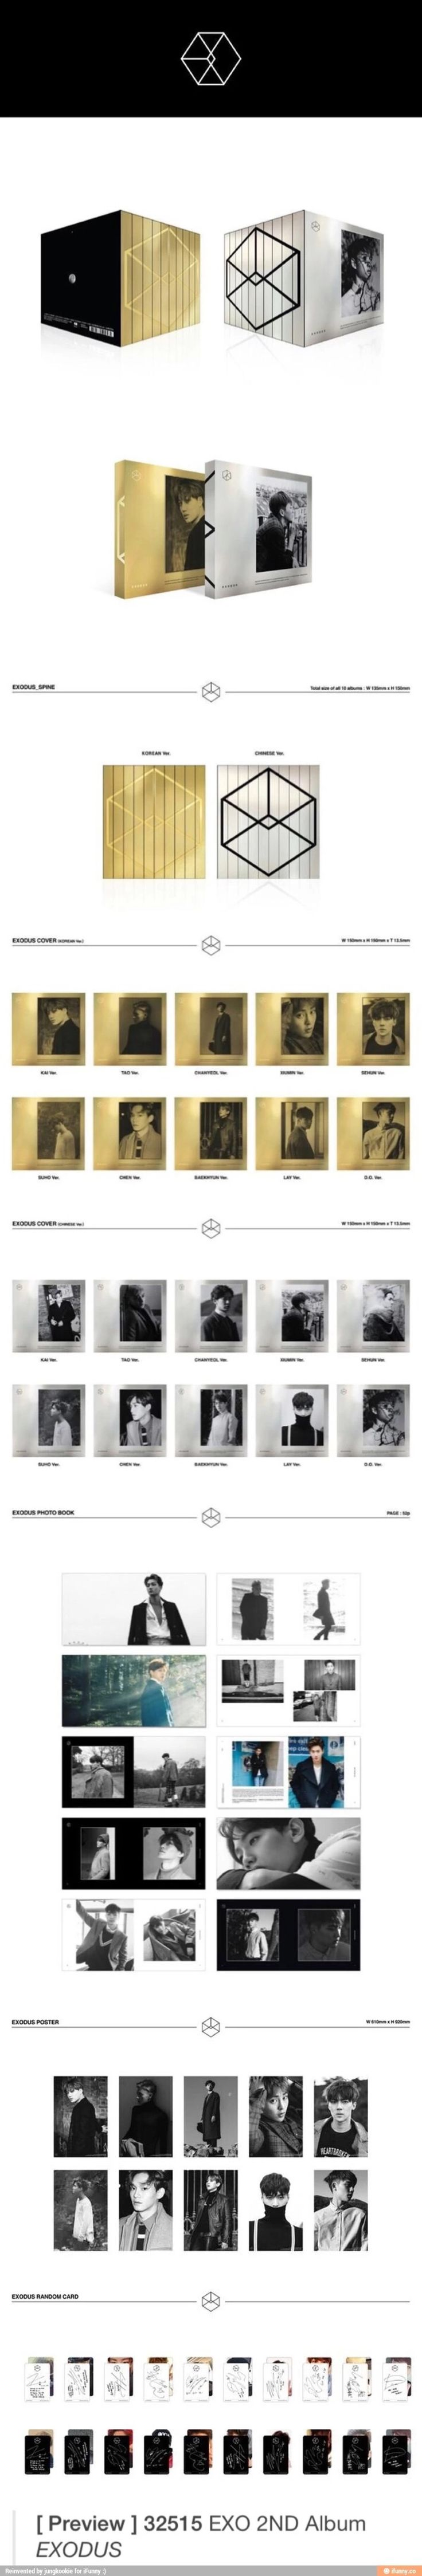 Exo's new album Exodus will come out in 20 different versions. Gold for Korean, Silver for Mandarin, and a member's picture on one for each one.